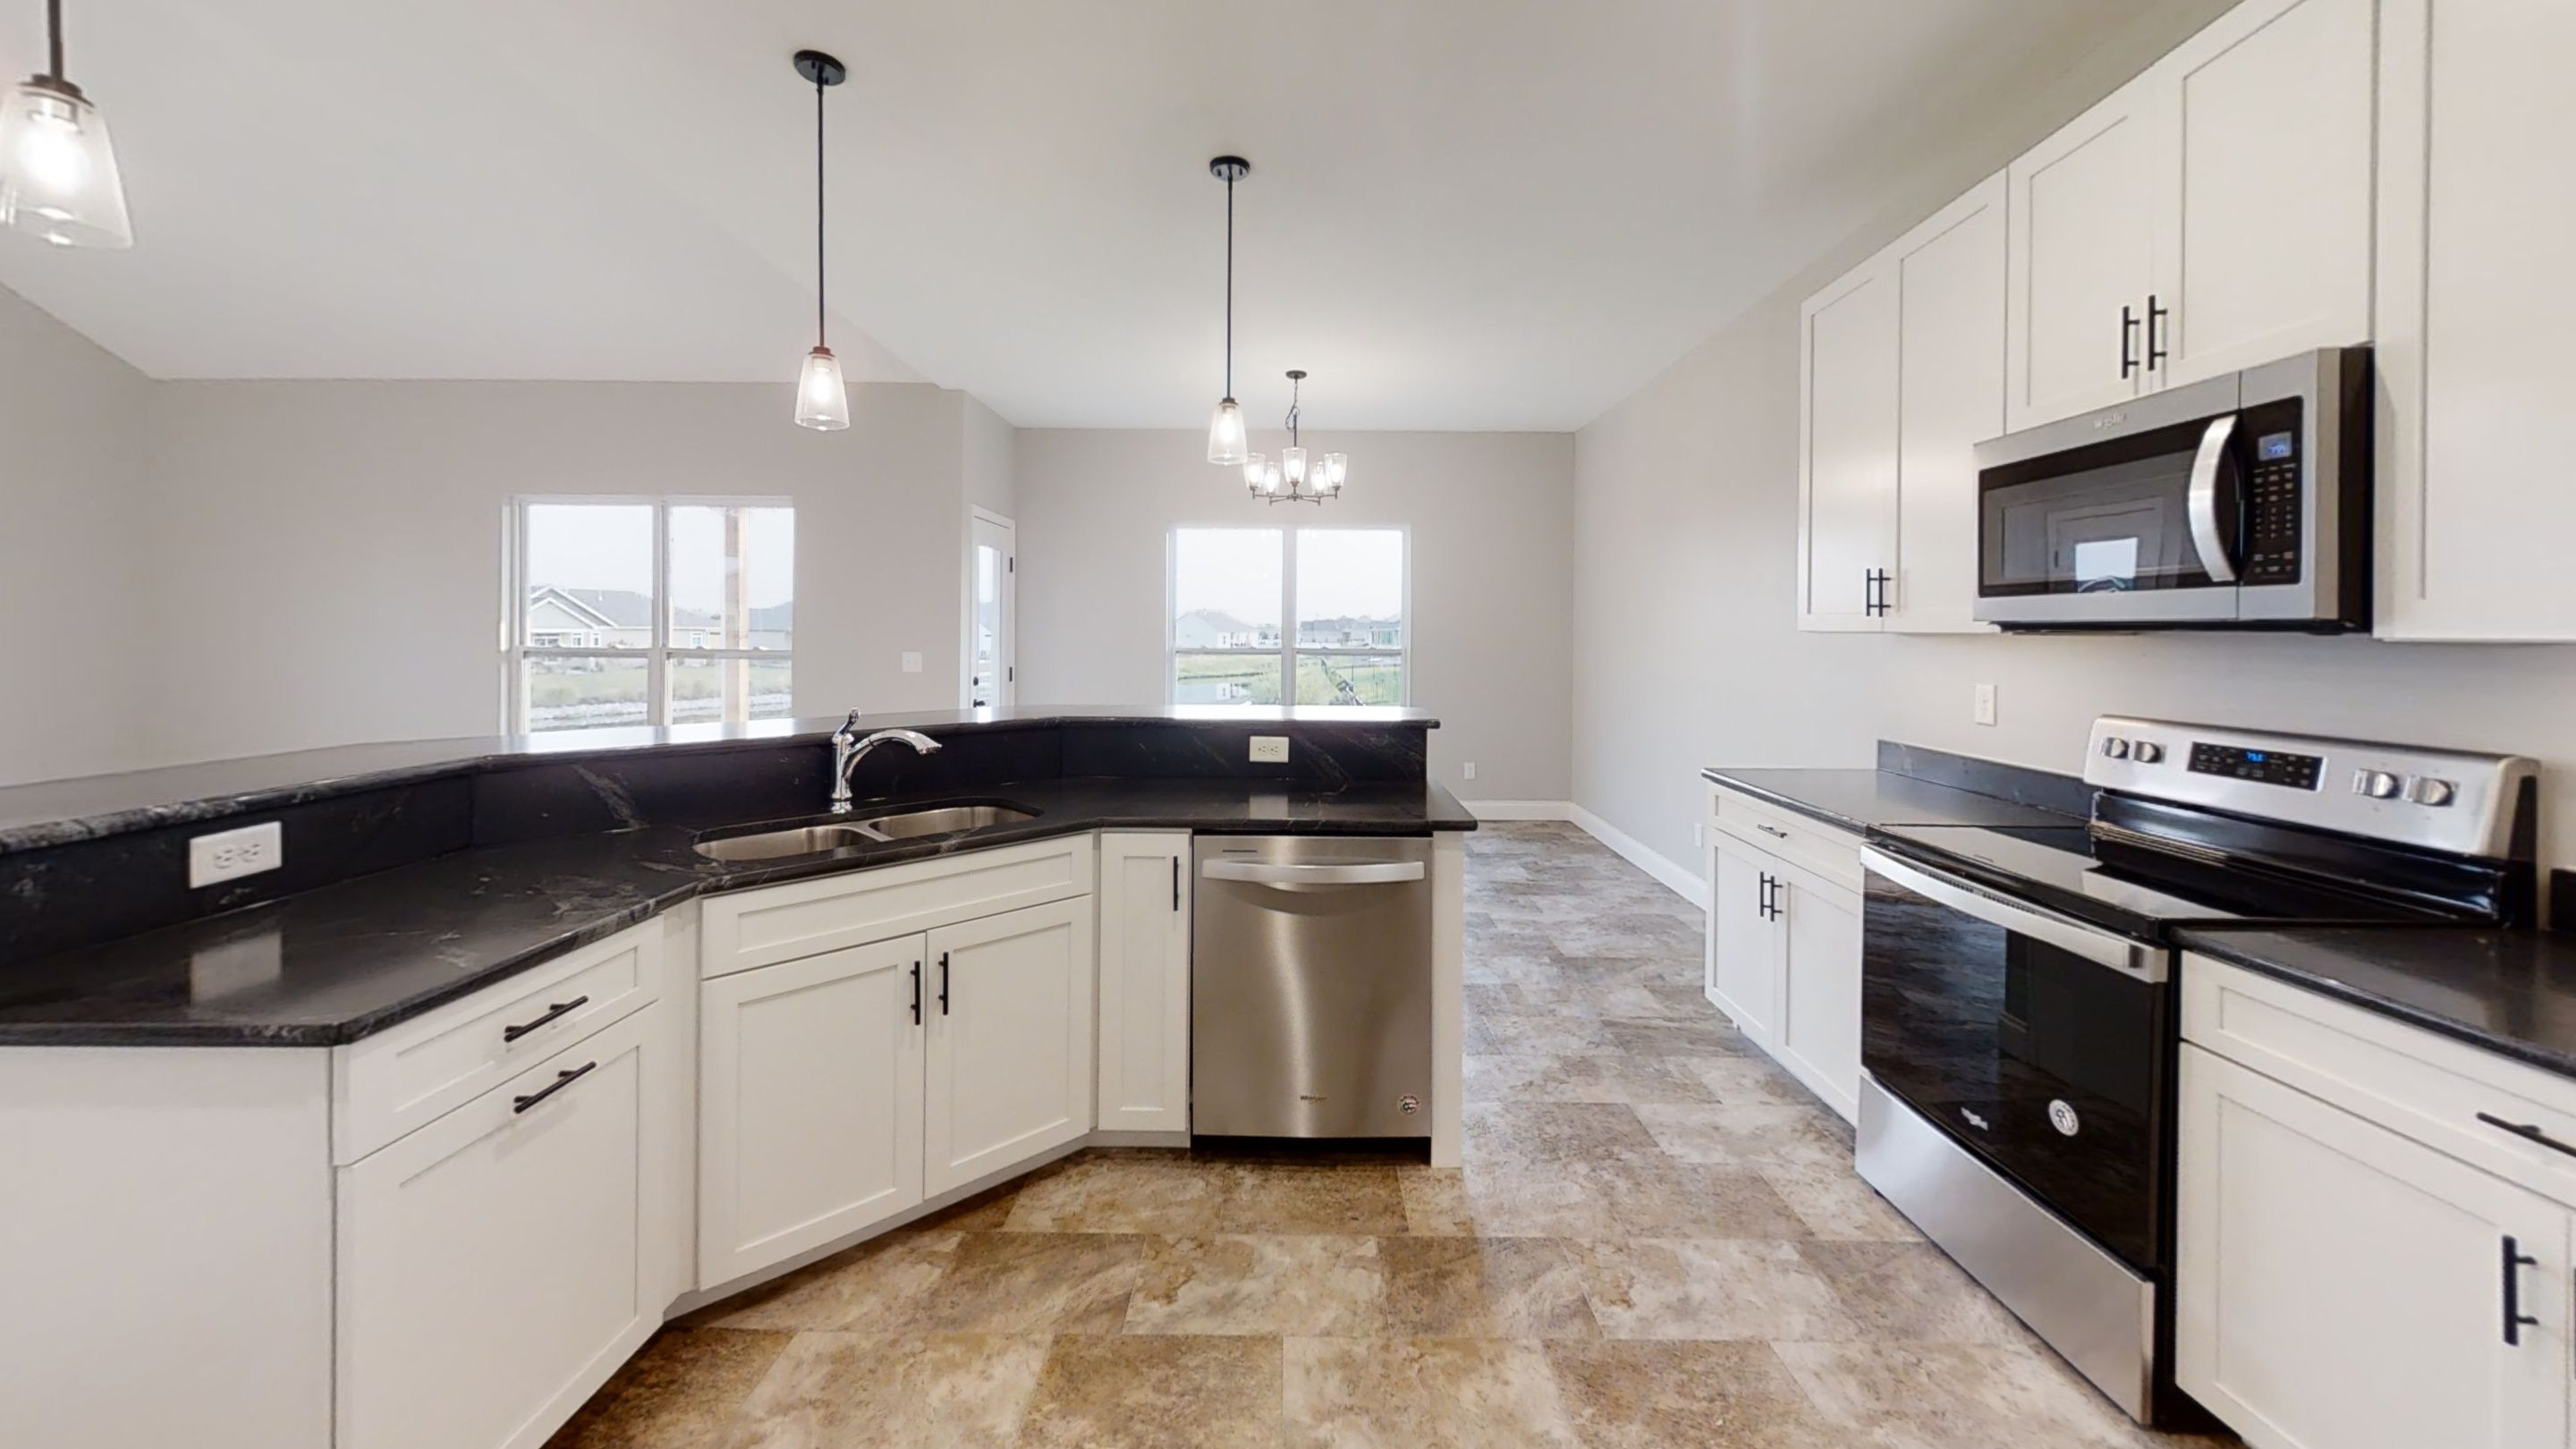 Kitchen featured in the Appleby By C.A. Jones, Inc.  in St. Louis, IL